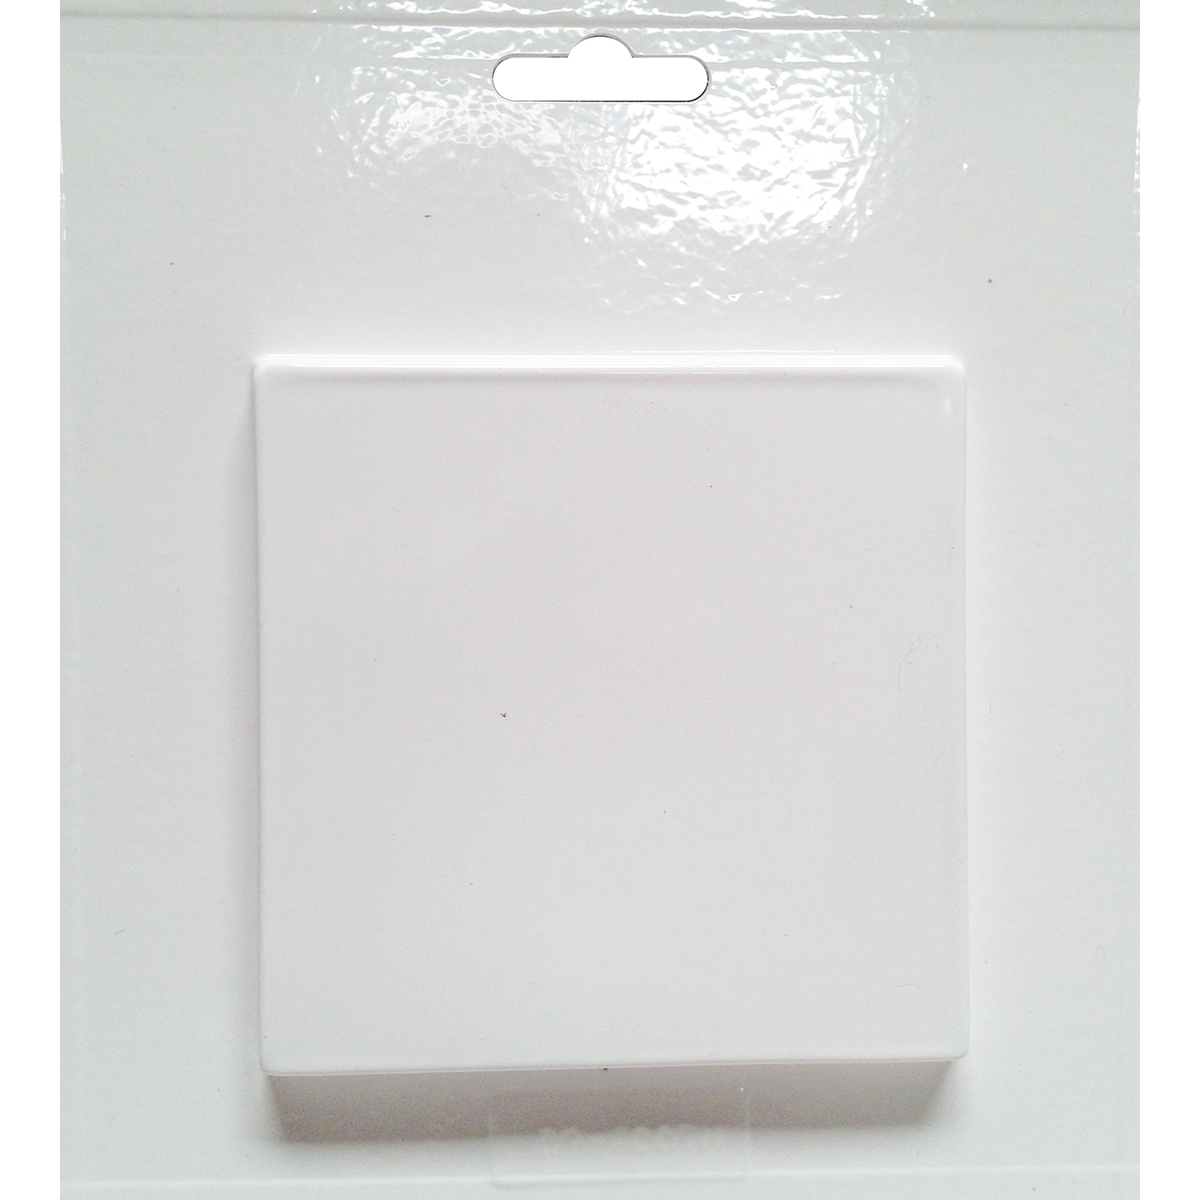 Yaley Candle Crafting Cool2Cast Mold Square Tile